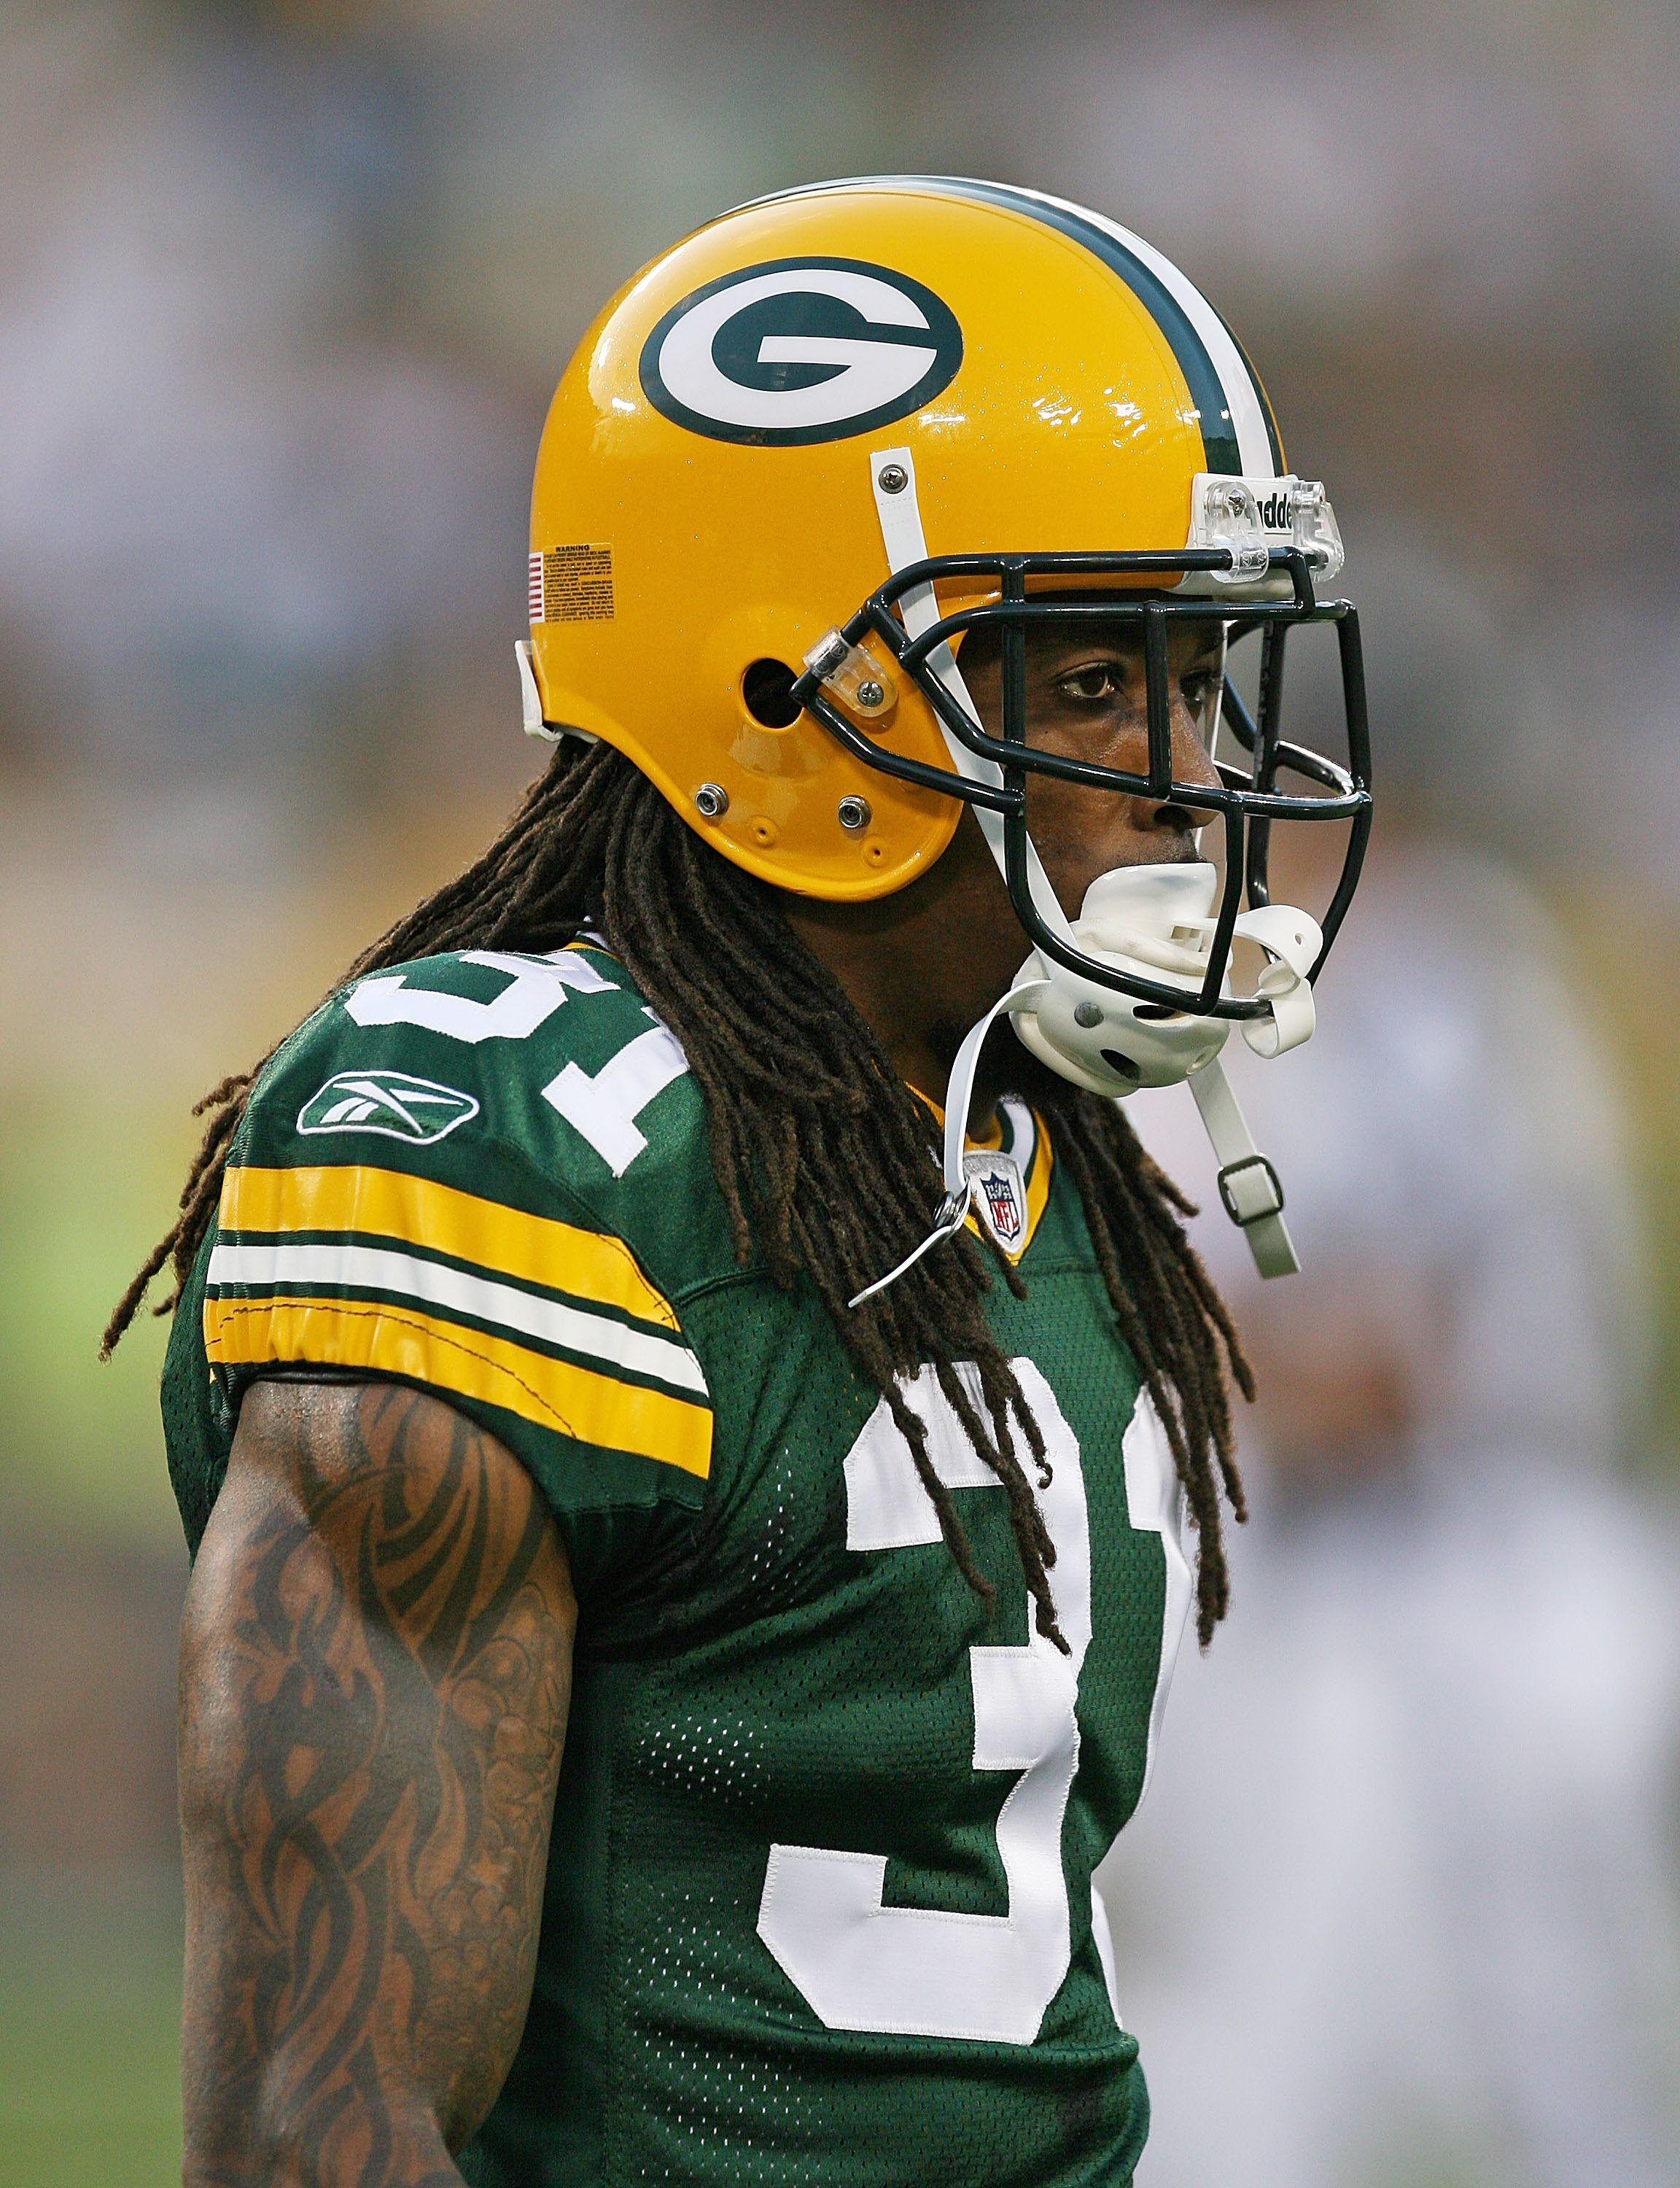 GREEN BAY, WI - SEPTEMBER 13: Al Harris #31 of the Green Bay Packers participates in warm-ups before a game against the Chicago Bears on September 13, 2009 at Lambeau Field in Green Bay, Wisconsin. The Packers defeated the Bears 21-15. (Photo by Jonathan